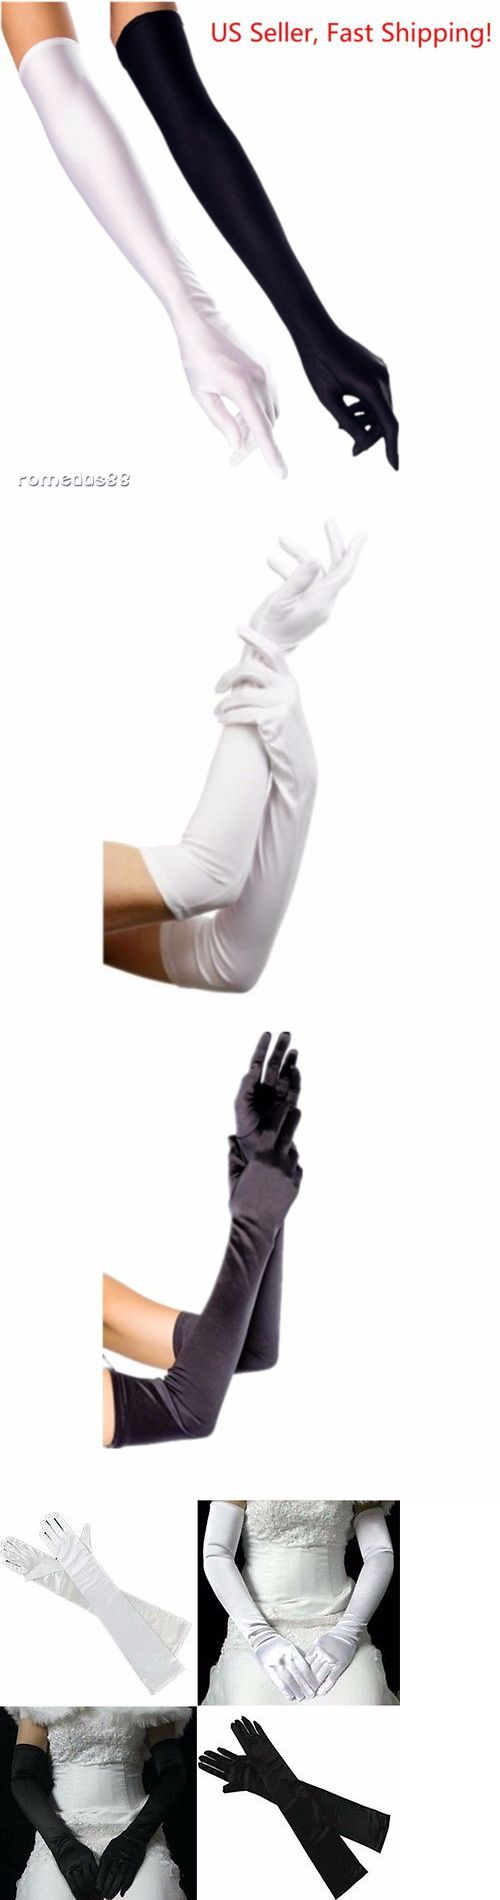 b0a06dc53 Gloves 98735: Dh Women S Evening Gloves 22 Long White Black Satin Finger  Gloves - 2 Pairs -> BUY IT NOW ONLY: $11.98 on #eBay #gloves #… | Gloves  98735 ...